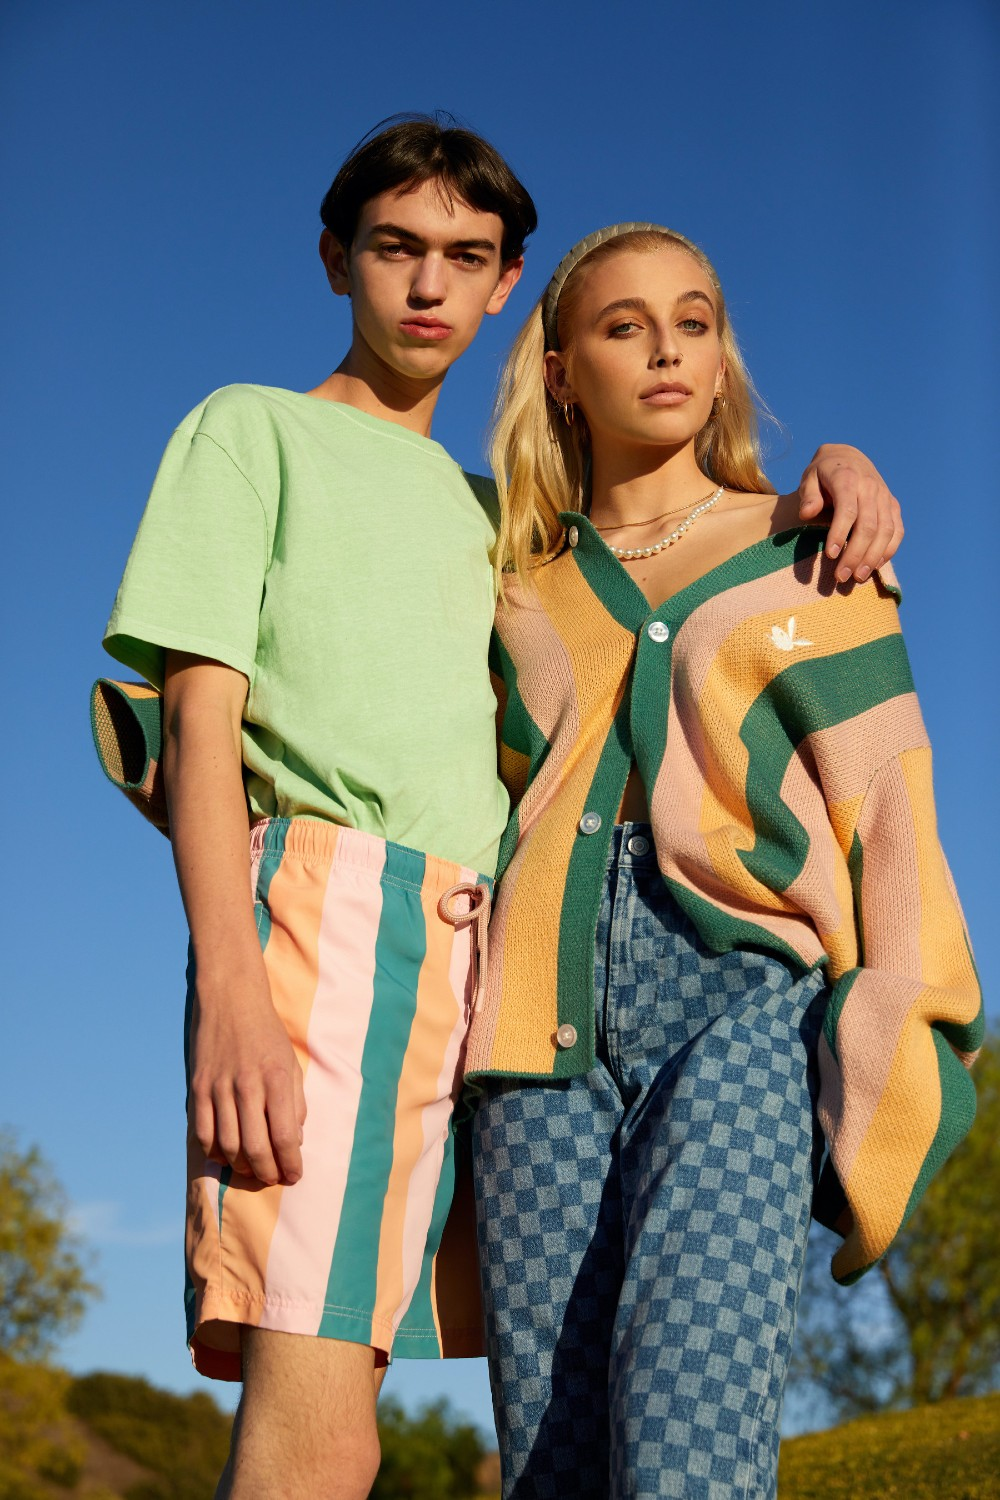 PacSun's summer campaign centers gender-free fashion